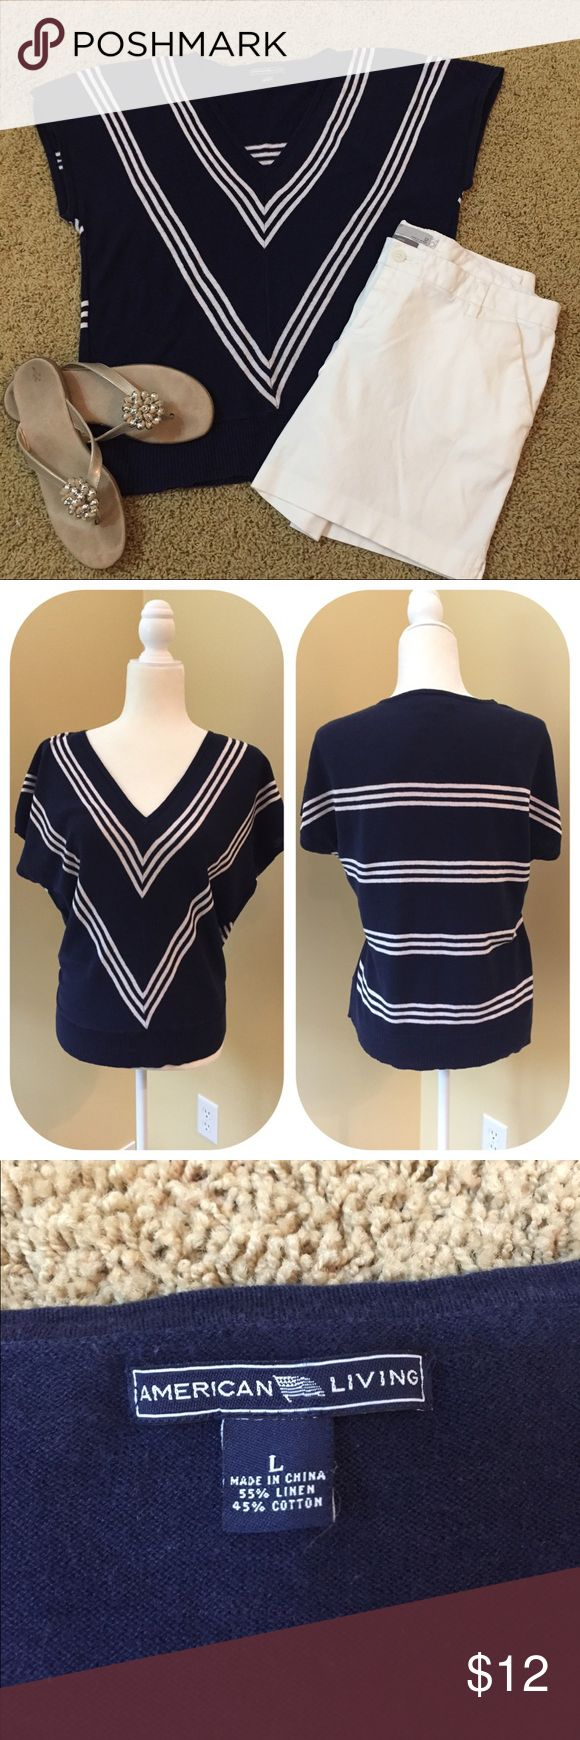 American Living Nautical Top Chevron navy and white strip front and horizontal stripe back. Sleeves sit just off the shoulder. This is a lightweight linen and cotton sweater type material. Gently used condition. Shows some very slight color fade but not enough to even capture in a photo. American Living Tops